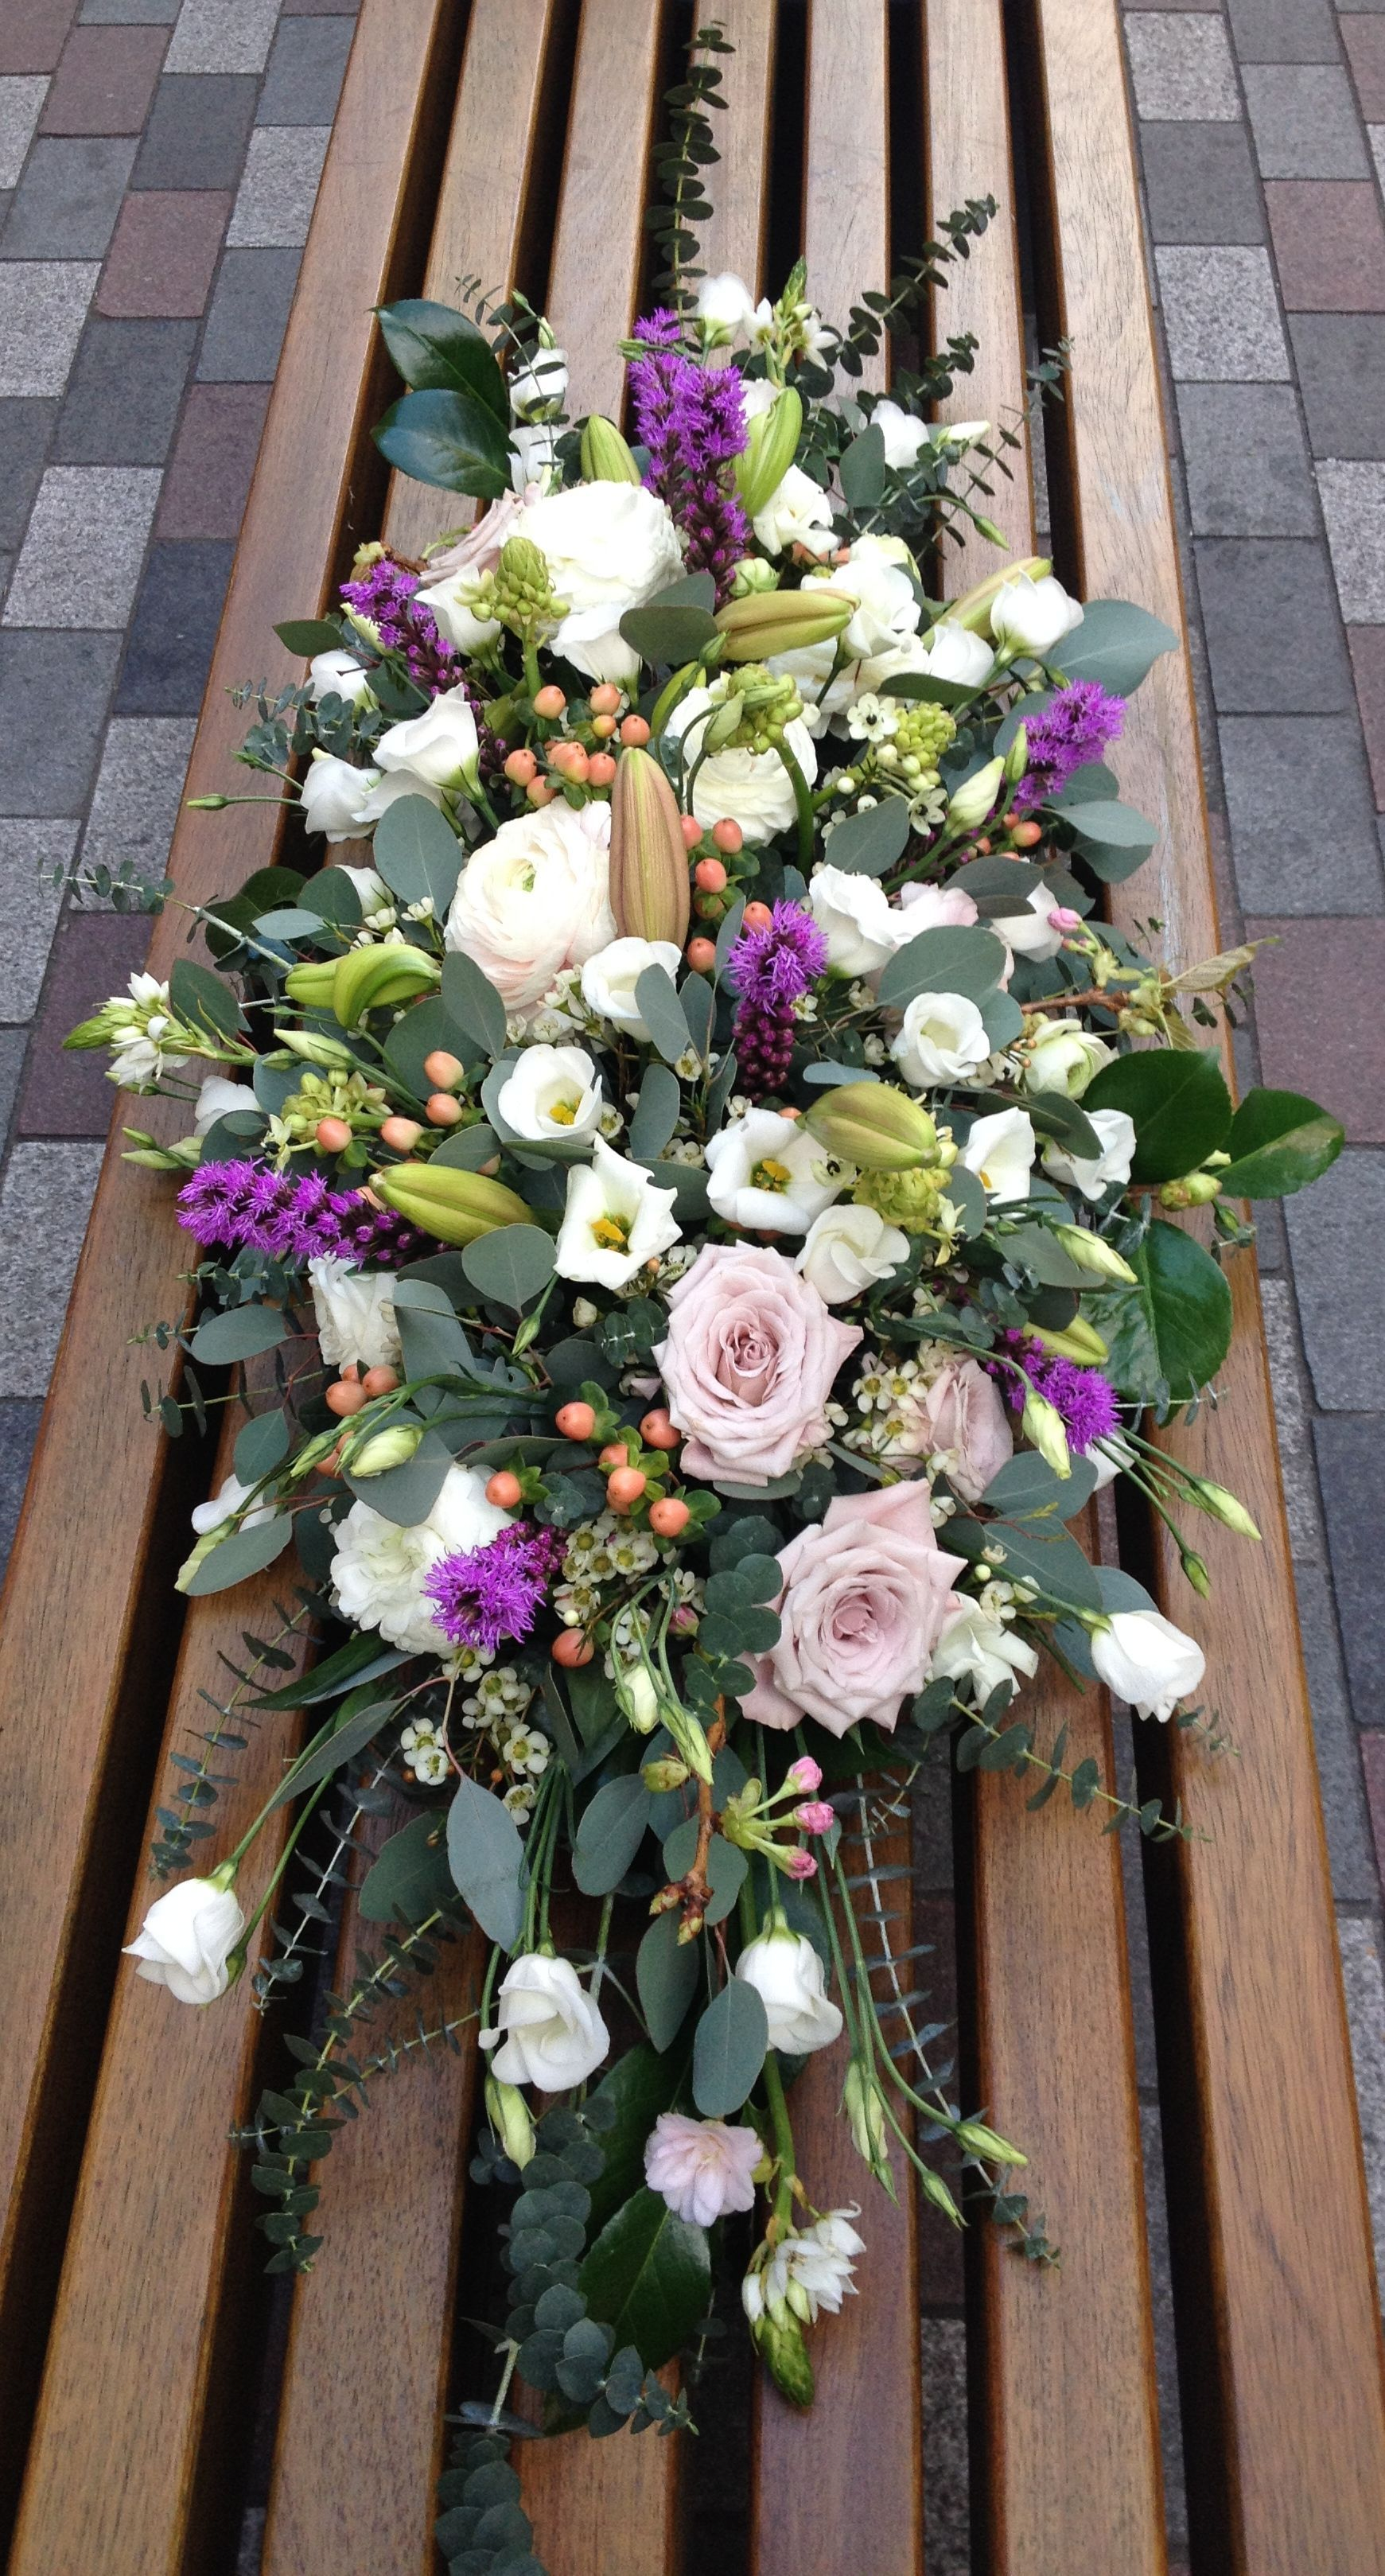 21 Funeral Flowers From Interflora Funeral Attire Funeral Flowers